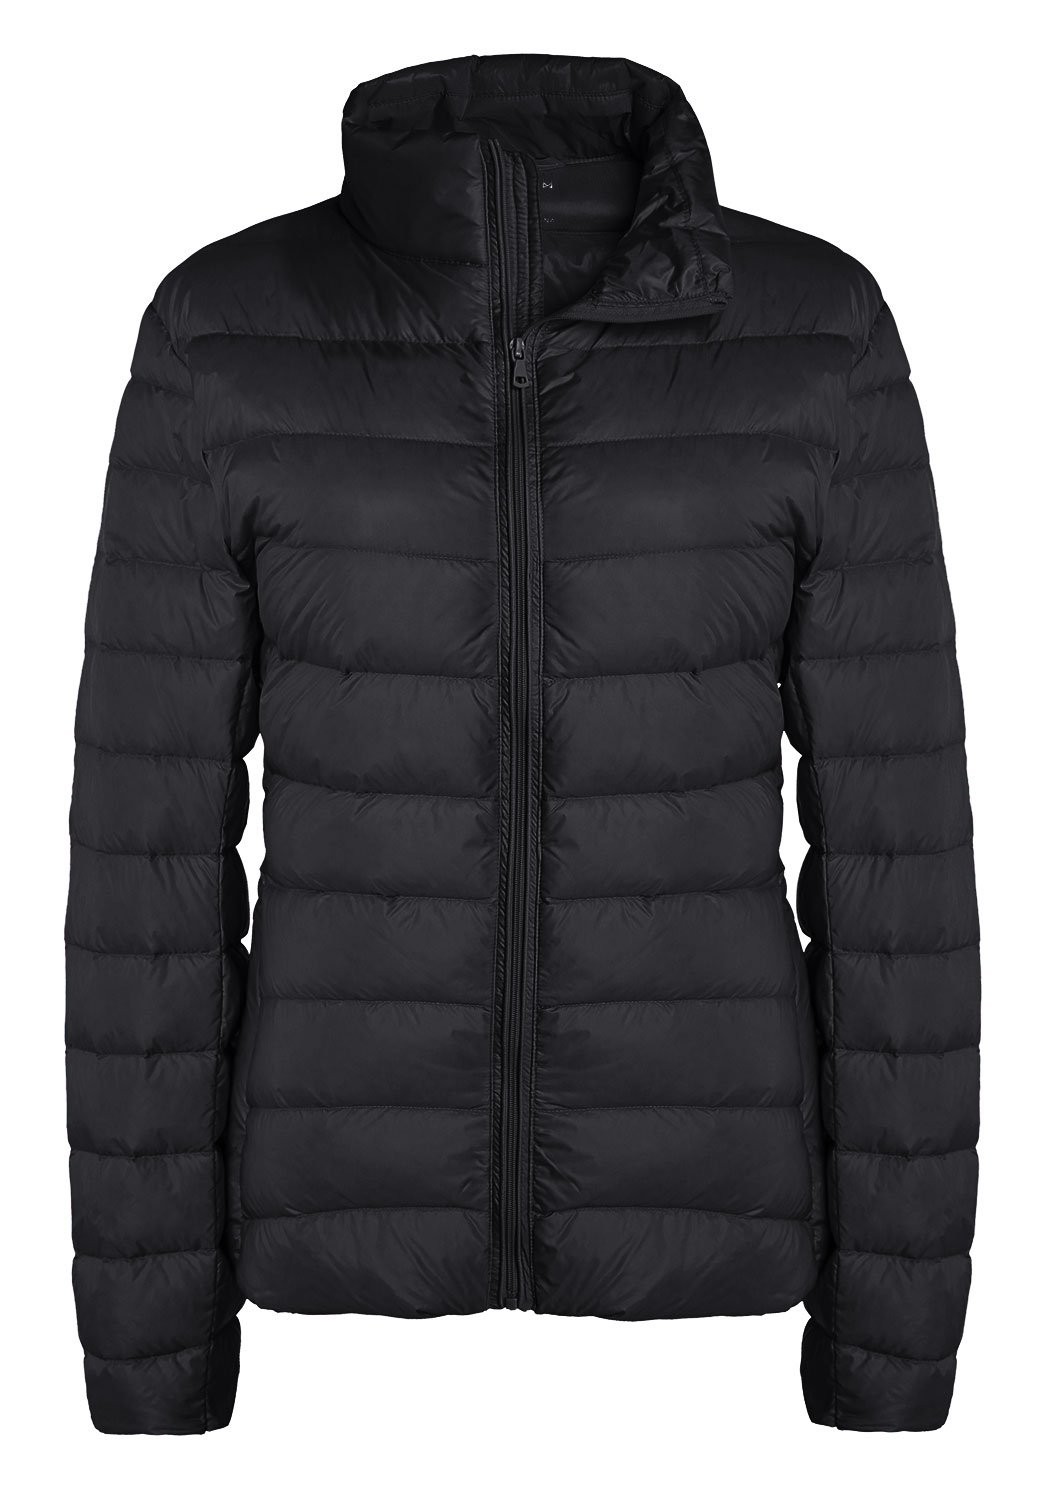 ZSHOW Women's Packable Quilted Down Jackets Light Weight Down Coat, US XX-Large, Black